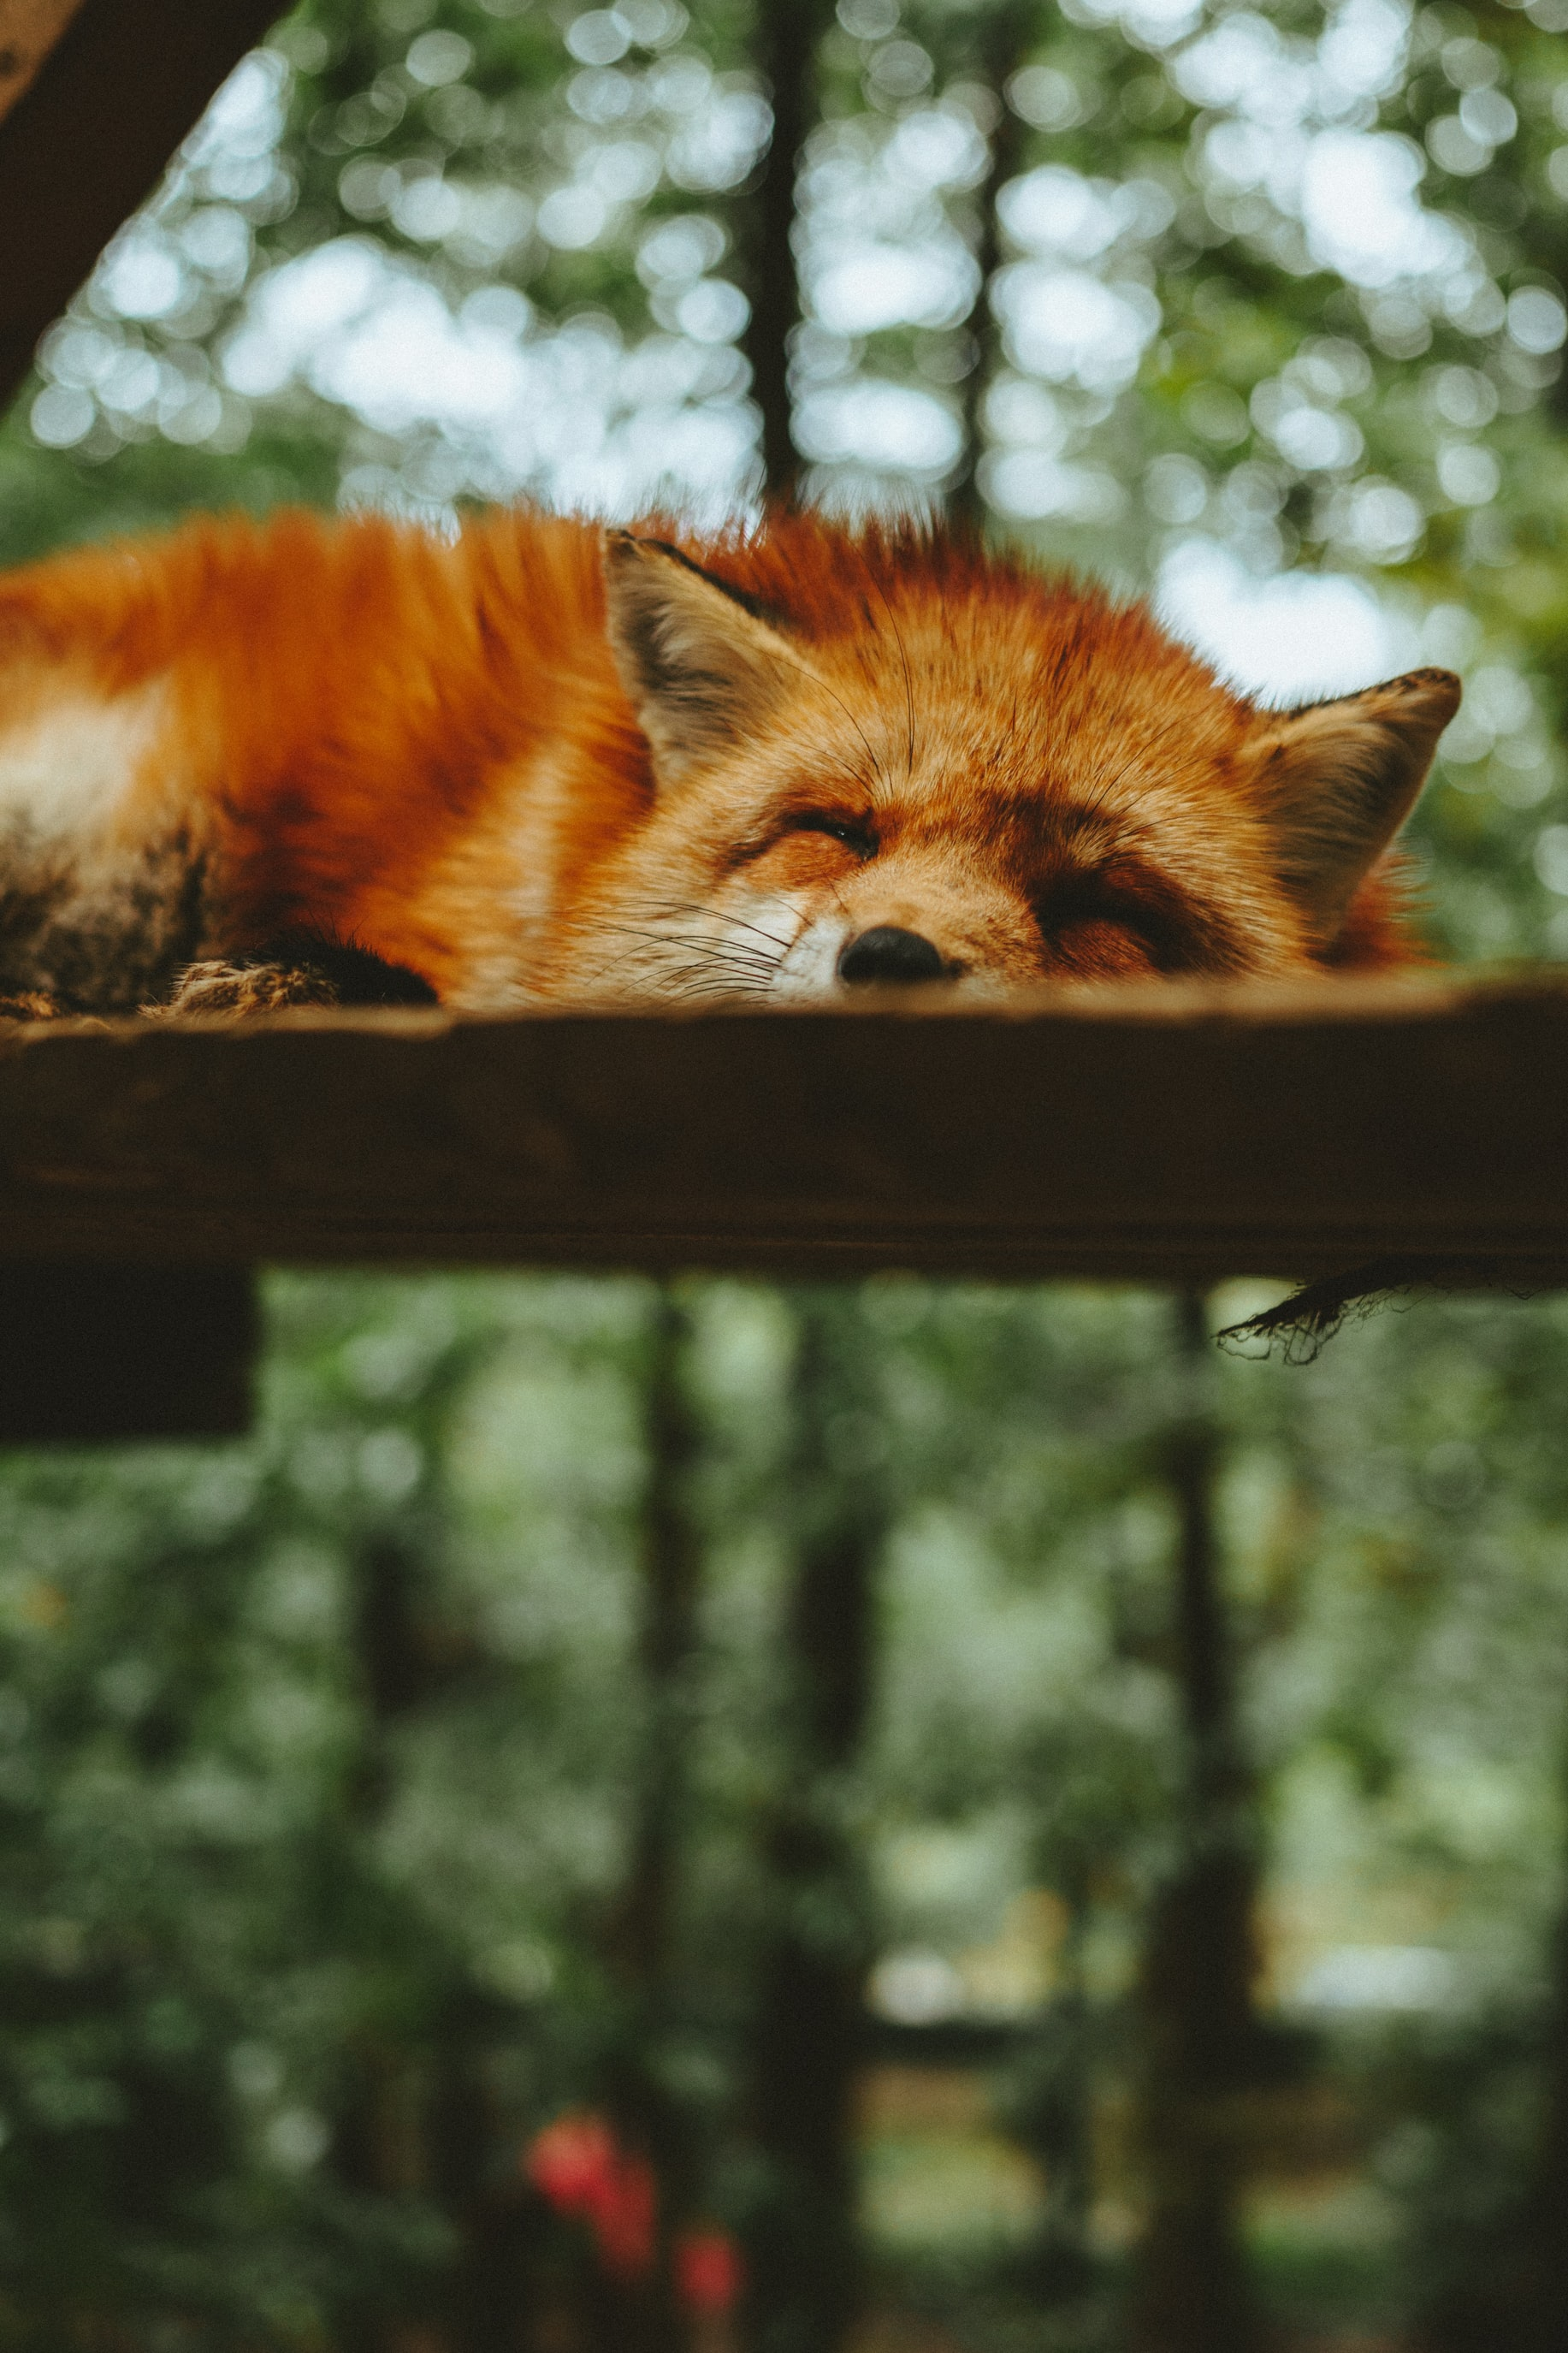 brown fox sleeping on brown wooden plank